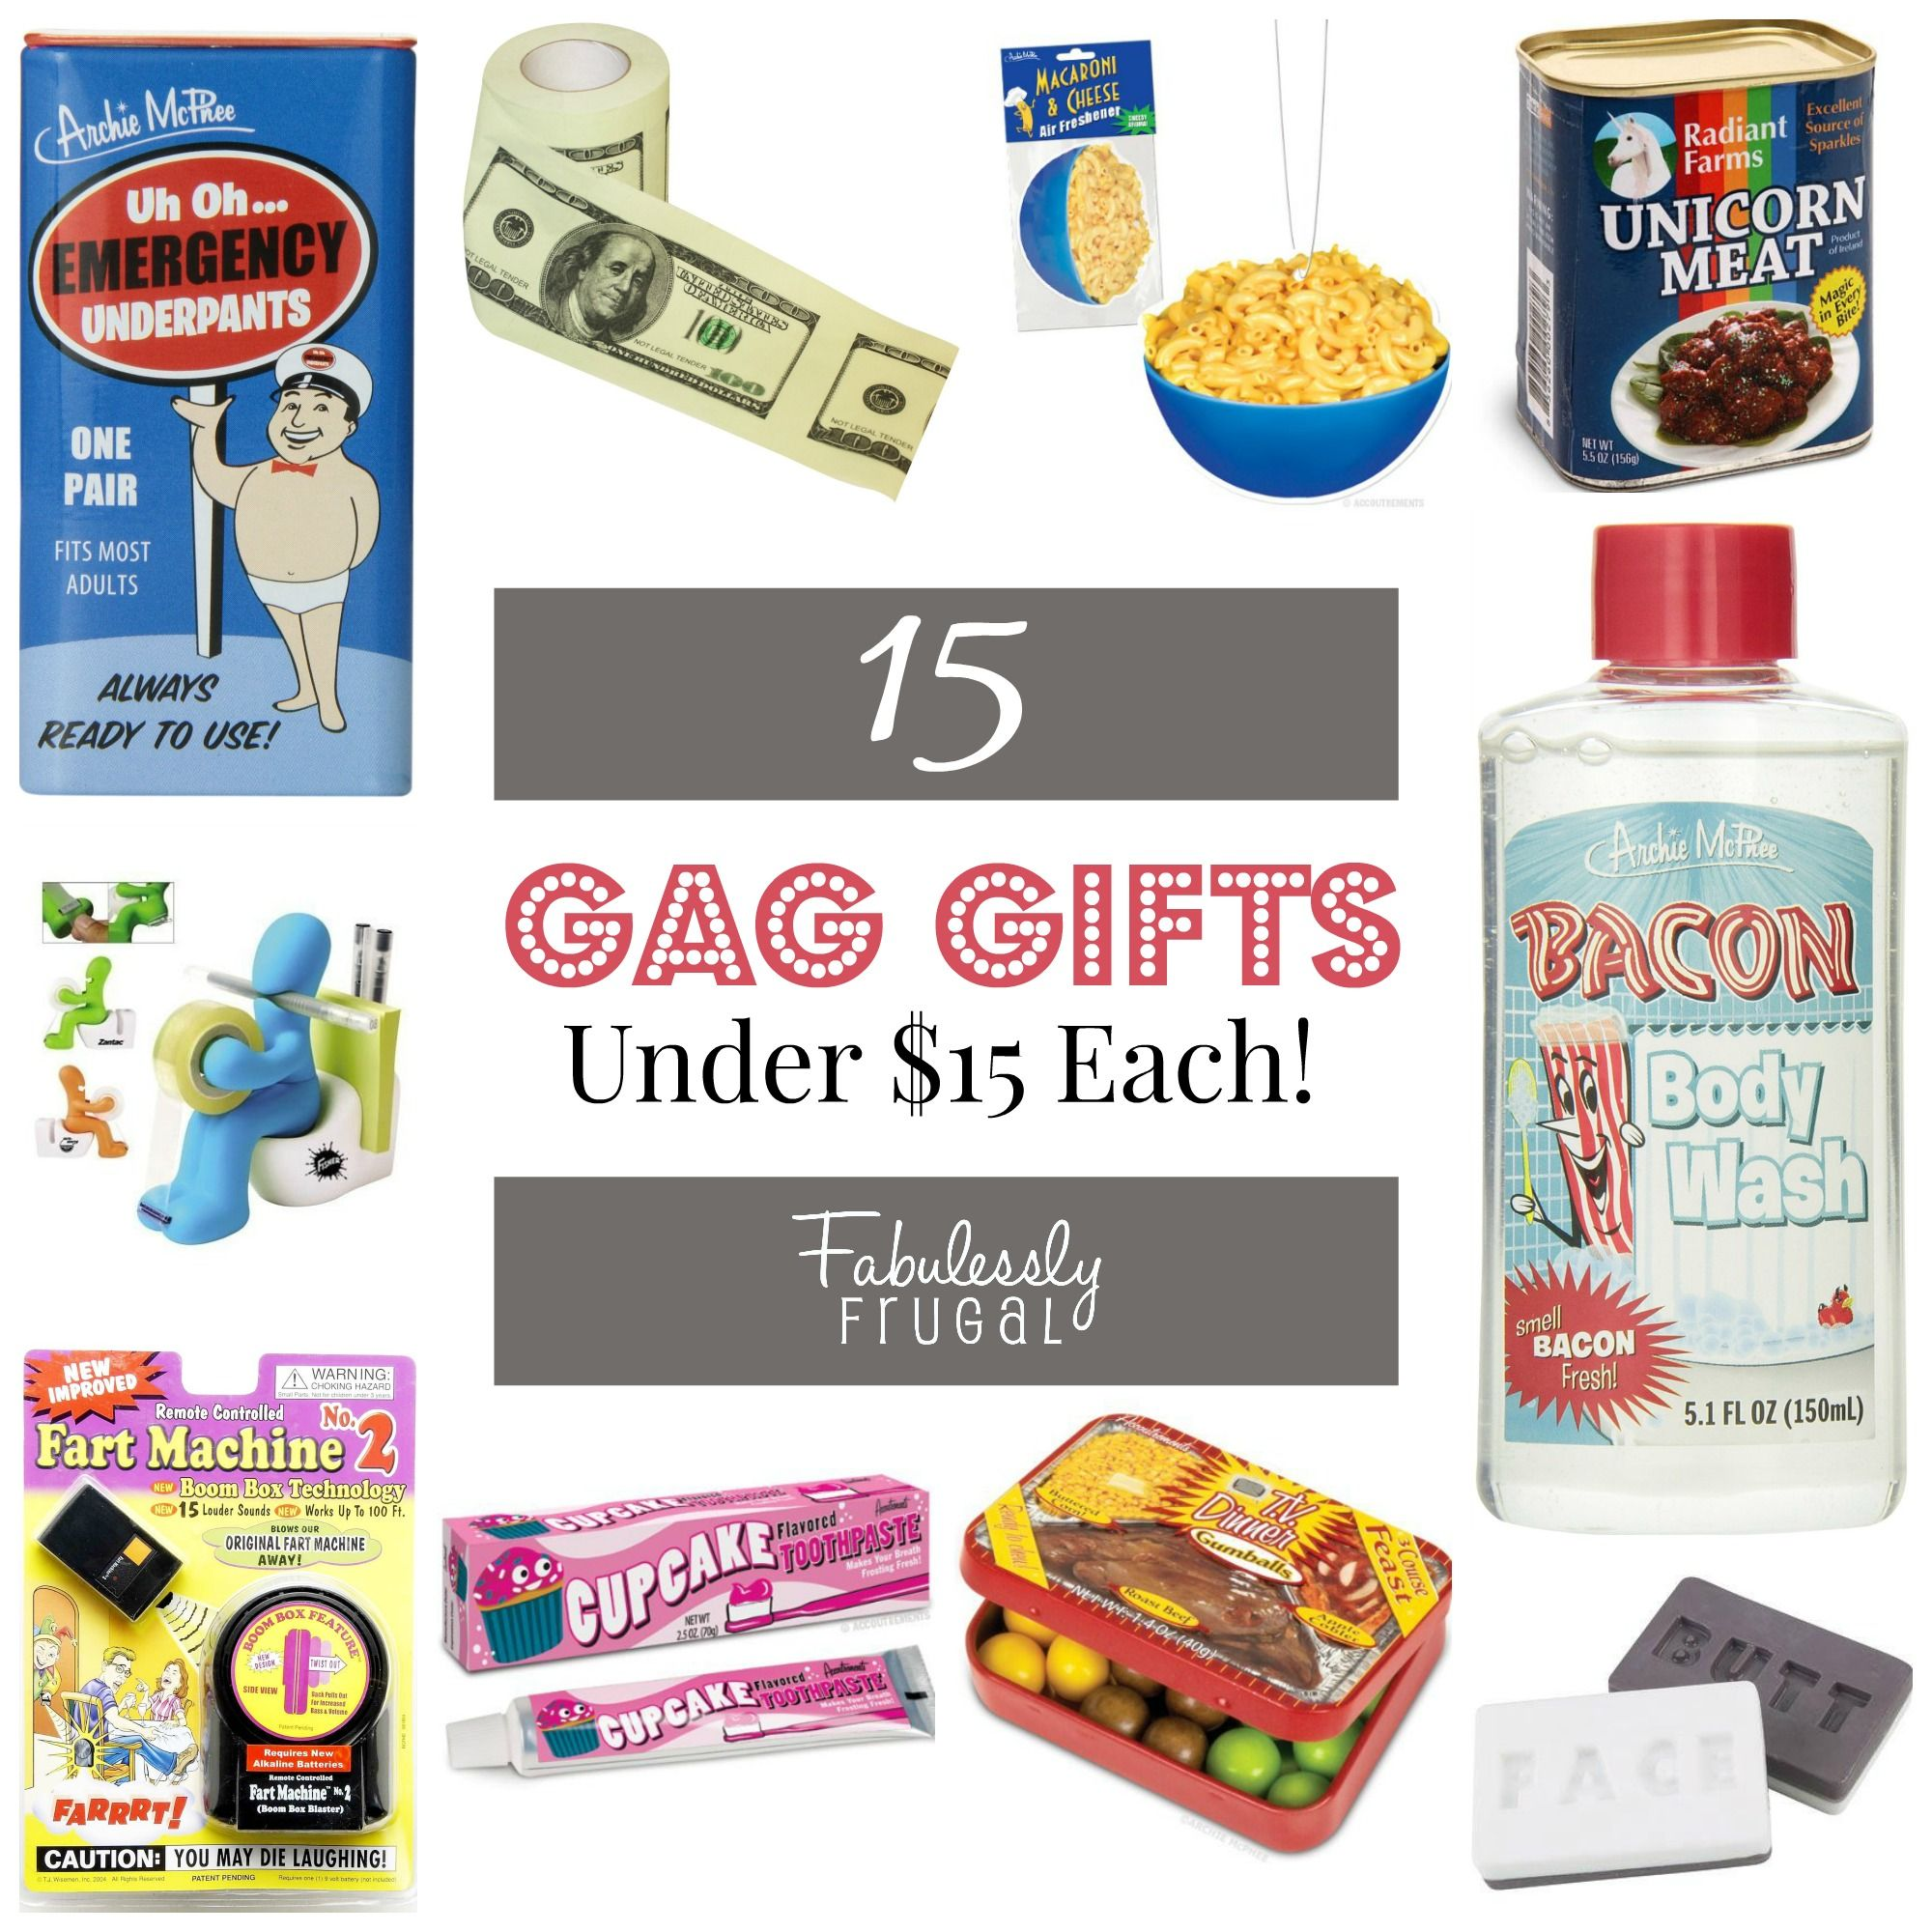 15 Funny Gag Gifts Under $15 Each! | Gift Ideas | Pinterest | Gifts ...